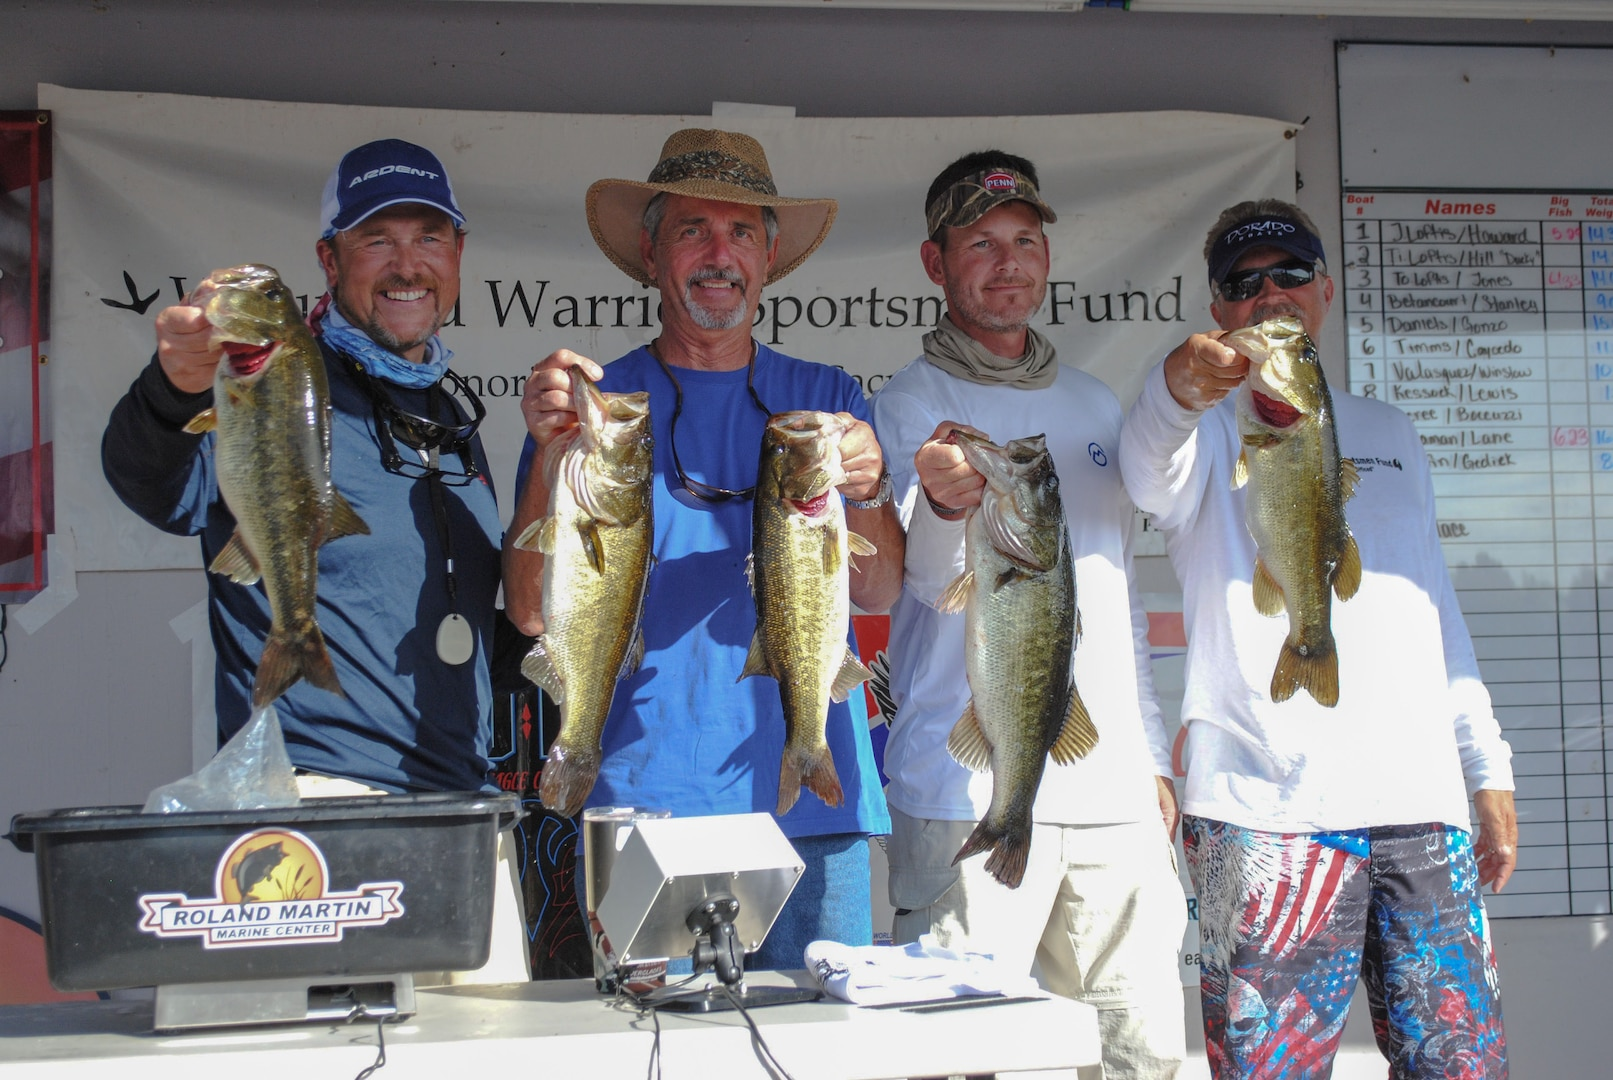 CLEWISTON, Fla. (Nov. 6, 2016) Participants weigh their catch at the Operation Bass Warrior fishing tournament. U.S. Central Command (CENTCOM) communications branch (J6) chief, Thomas Loftis (far right), a former Clewiston resident and retired Marine, organized the event with a network of friends and family as a way of giving back to those who served and sacrificed. (Courtesy photo)